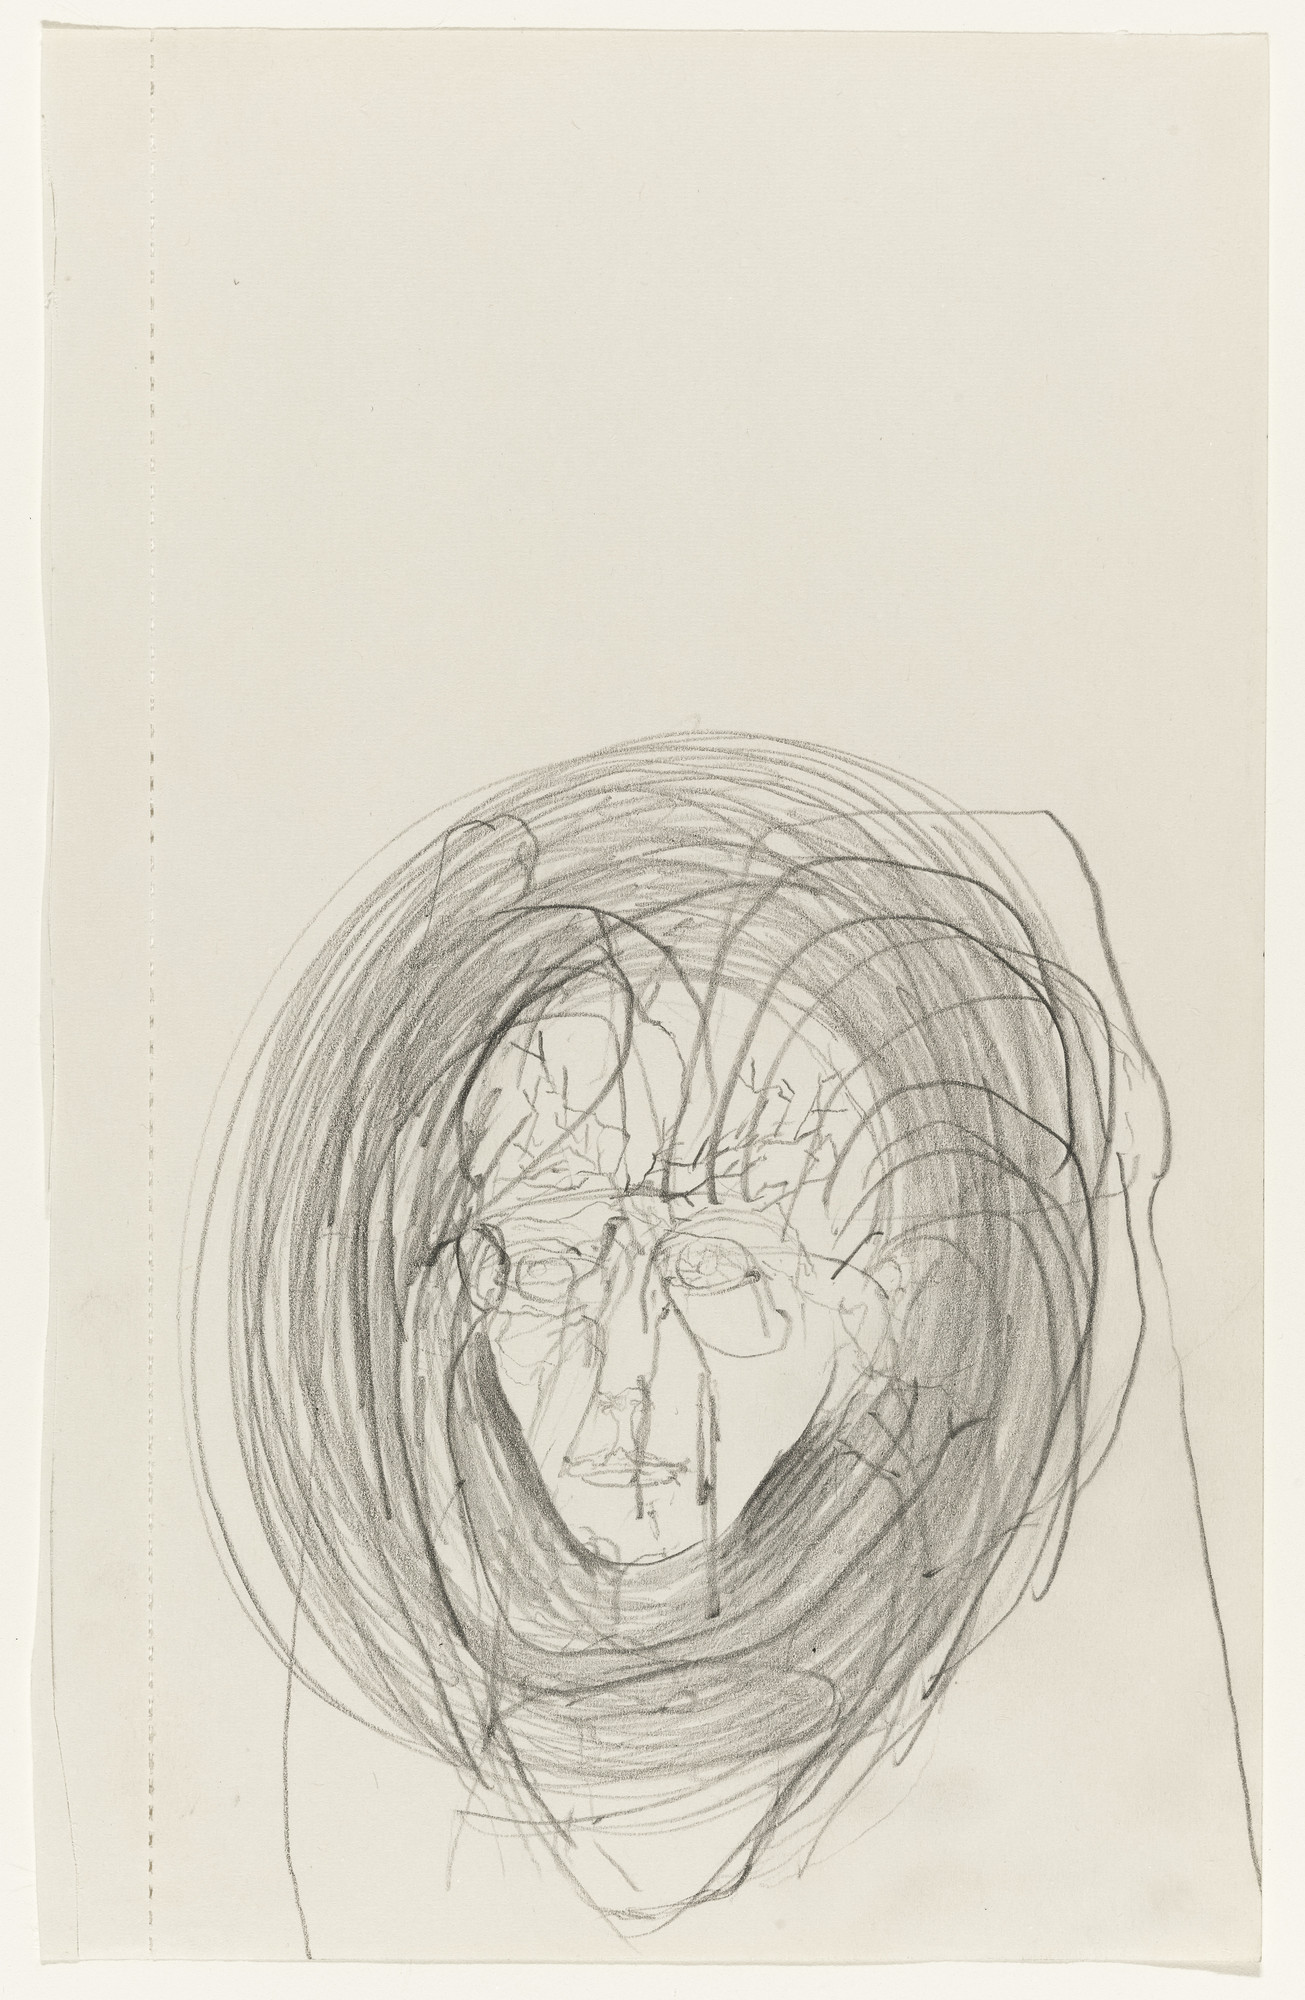 Joseph Beuys. Untitled. 1974. Pencil on paper, 8 1⁄2 × 5 3/8″ (21.6 × 13.7 cm). Gift of the artist. © 2016 Artists Rights Society (ARS), New York / VG Bild-Kunst, Bonn